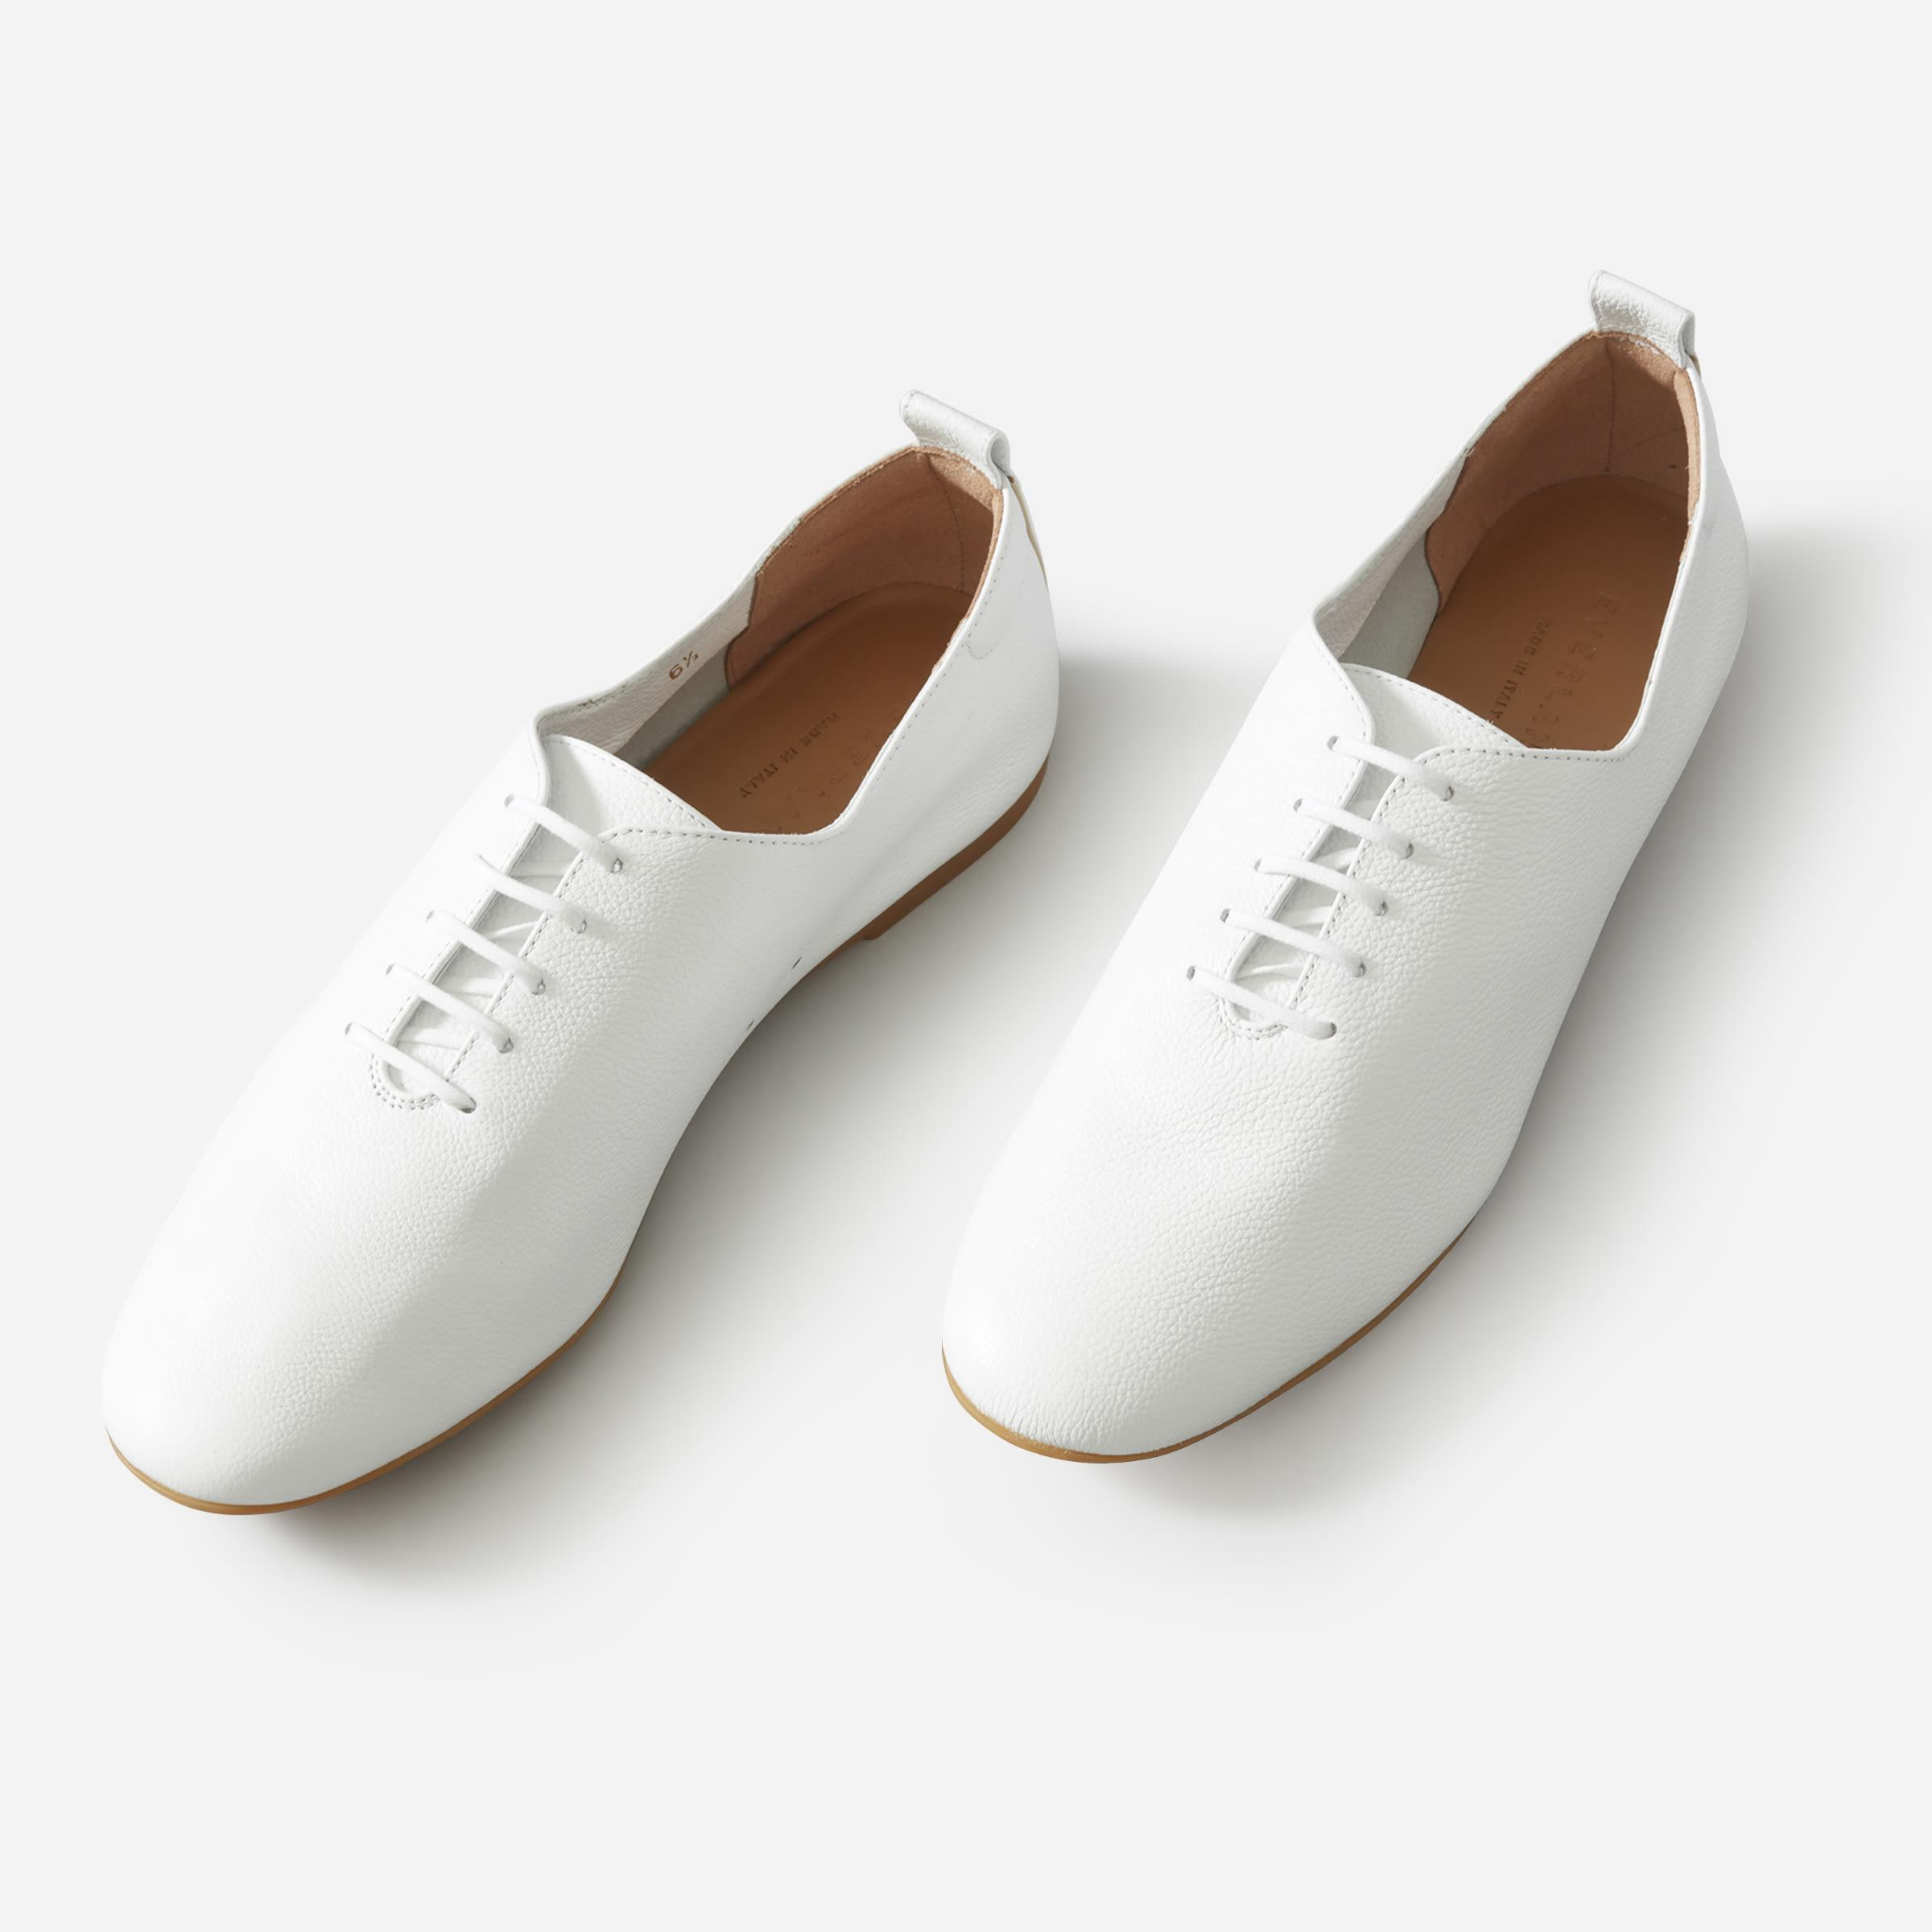 The Leather Lace-Up Flat 2